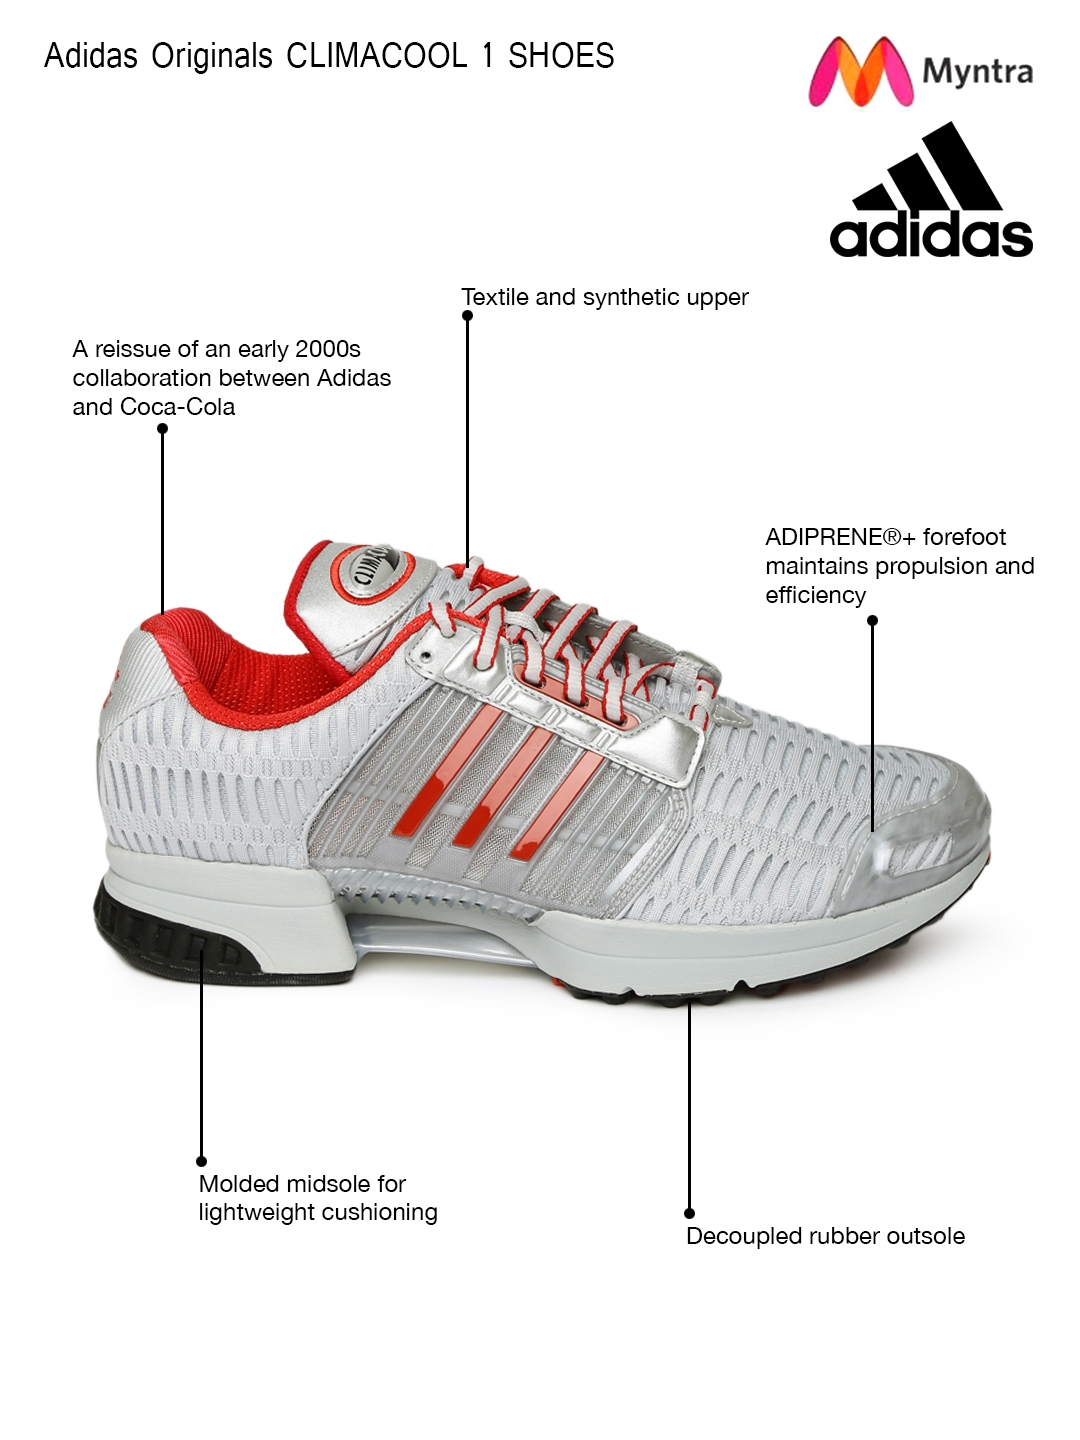 597edafed34 11477482002473-Adidas-Originals-X-Coca-Cola-Men-Grey-Clima-Cool-1-Running- Shoes-9681477482002096-2.jpg